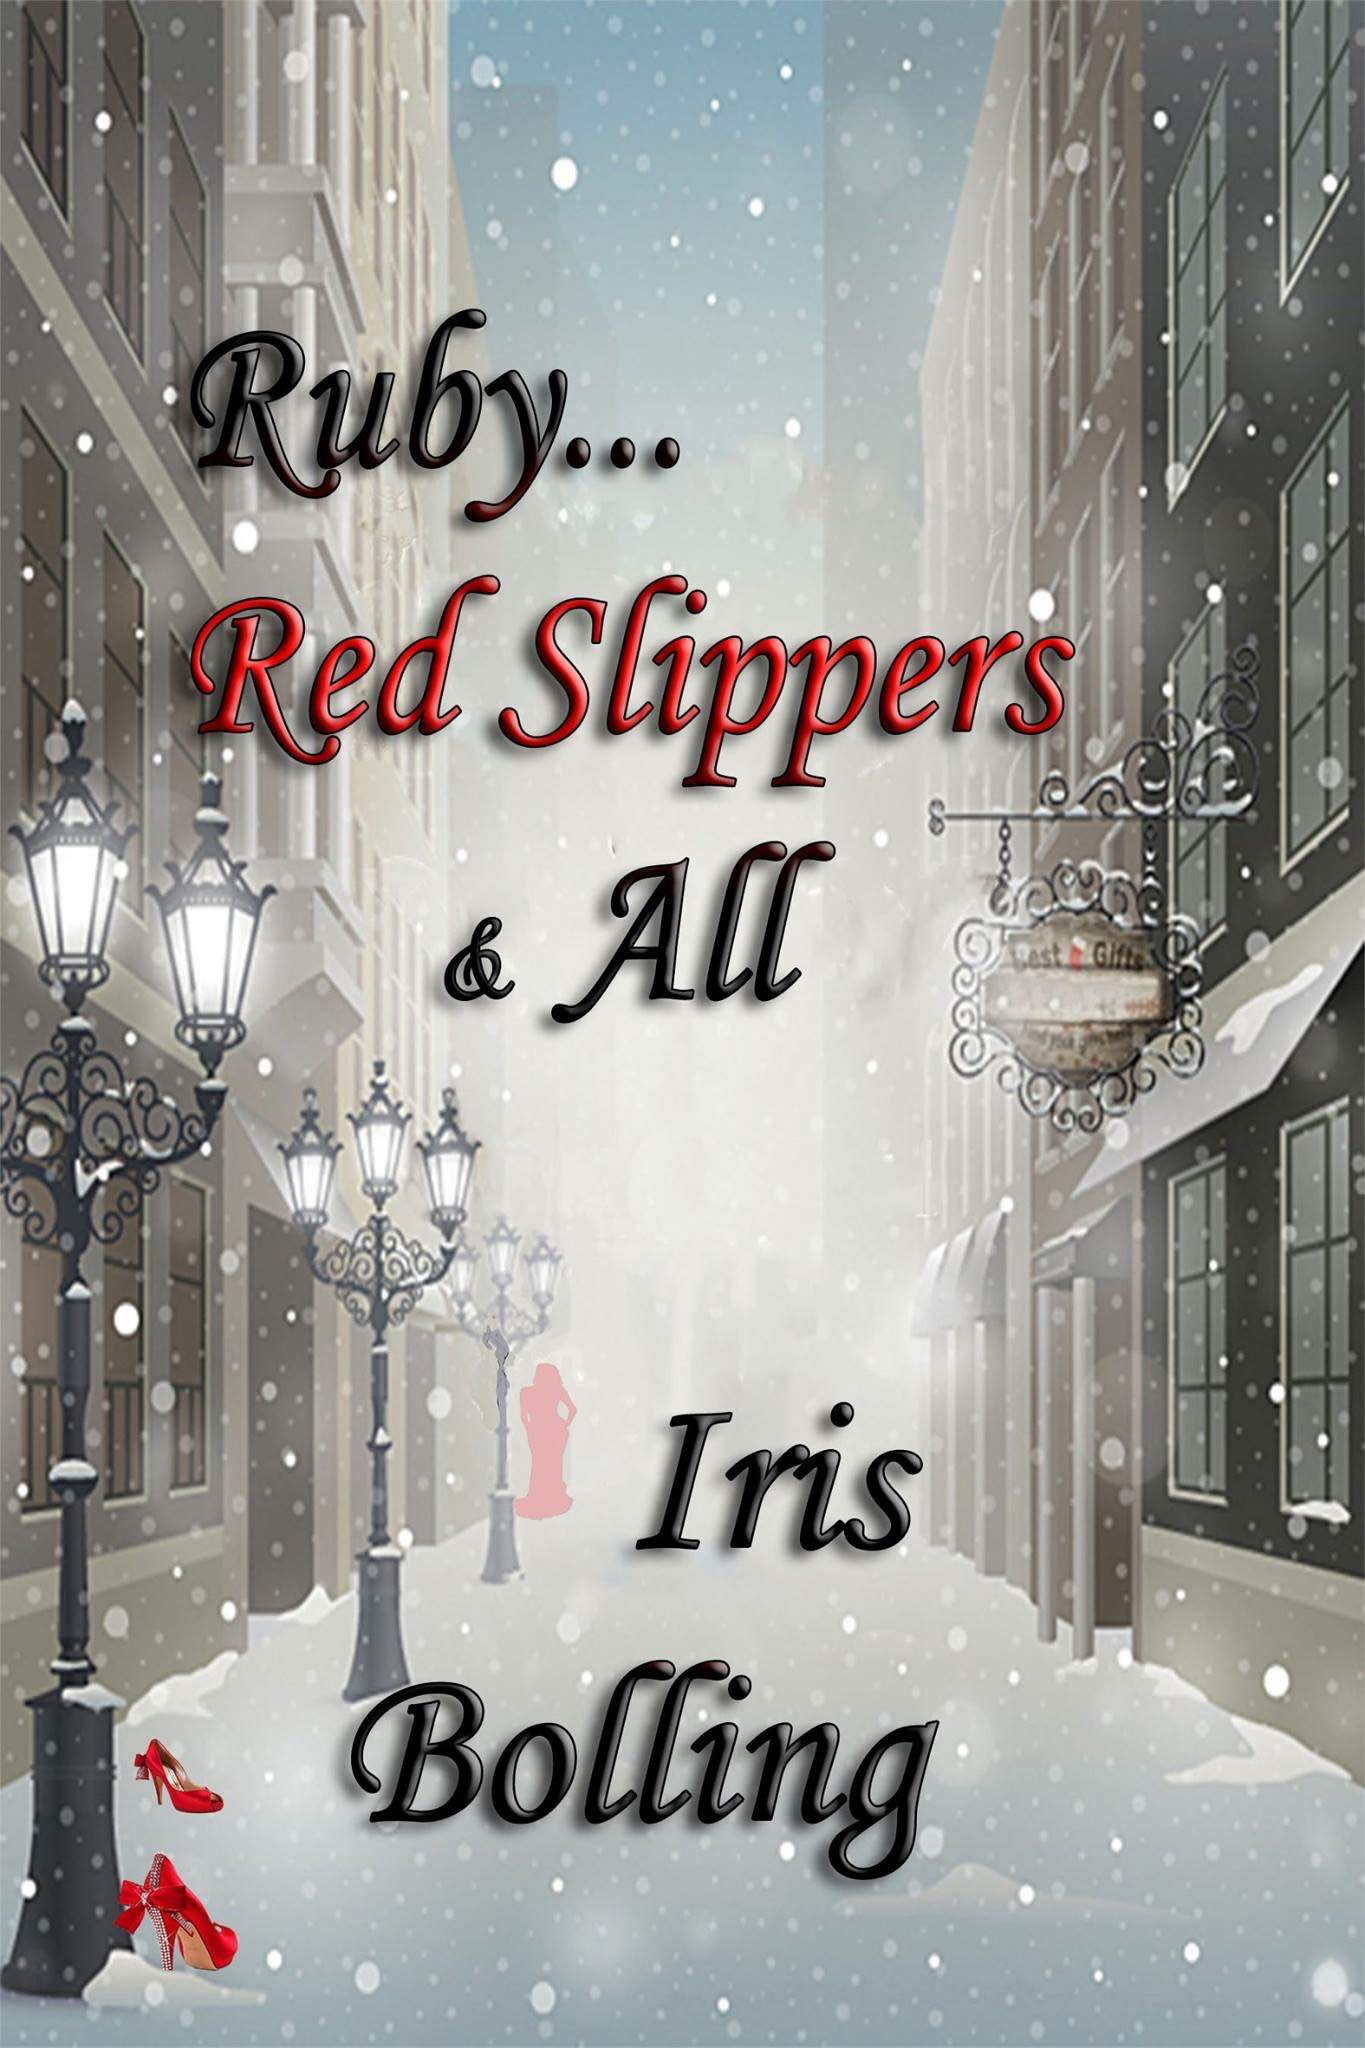 Author Iris Bolling shares Ruby Red Slippers and All